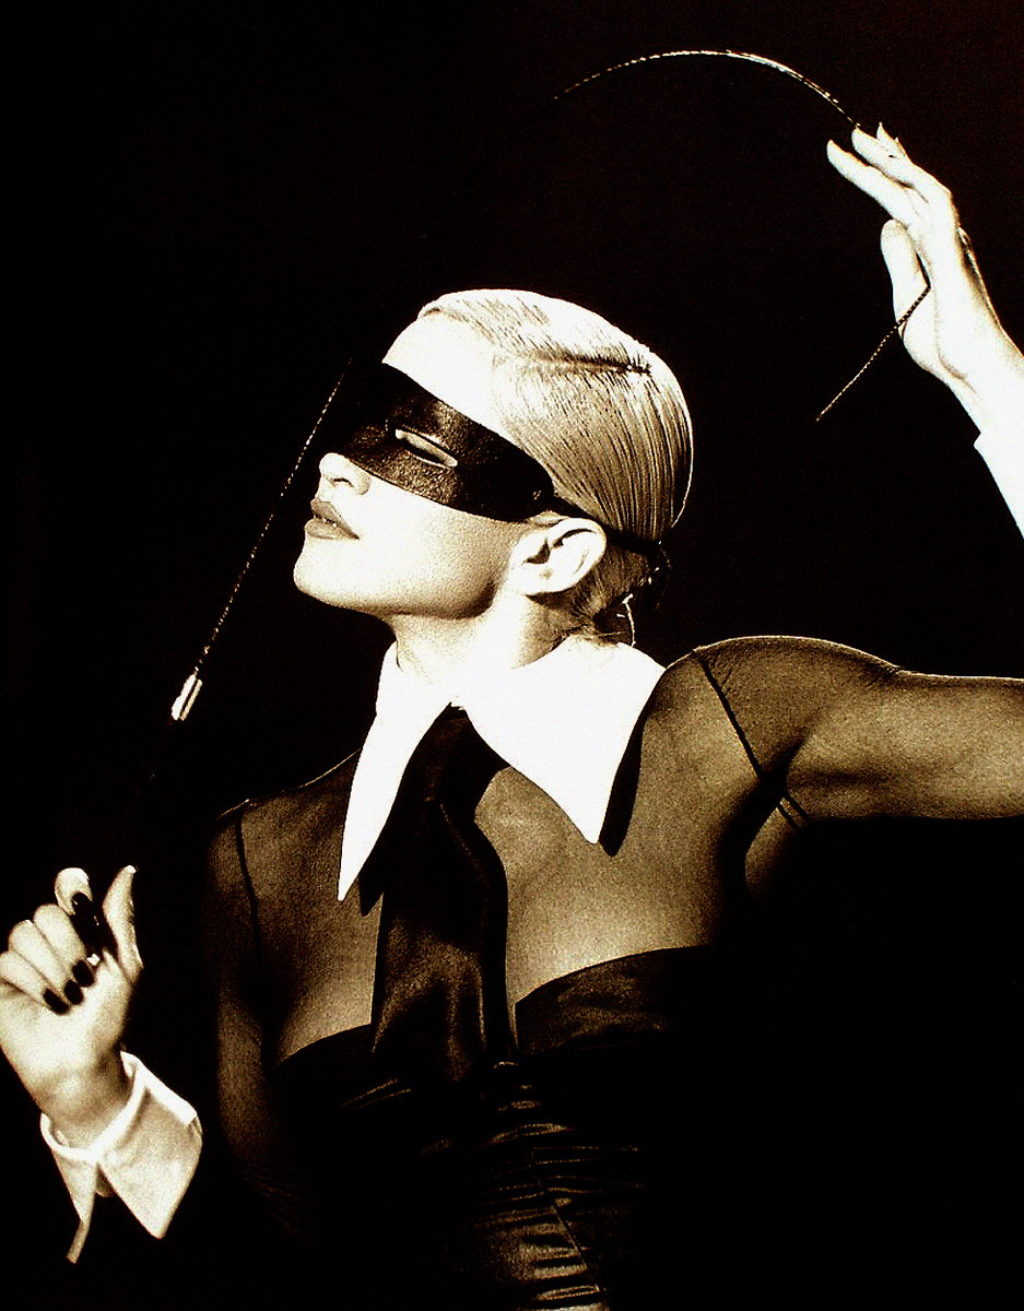 Madonna Erotica Wearing A Mask and Holding a Whip